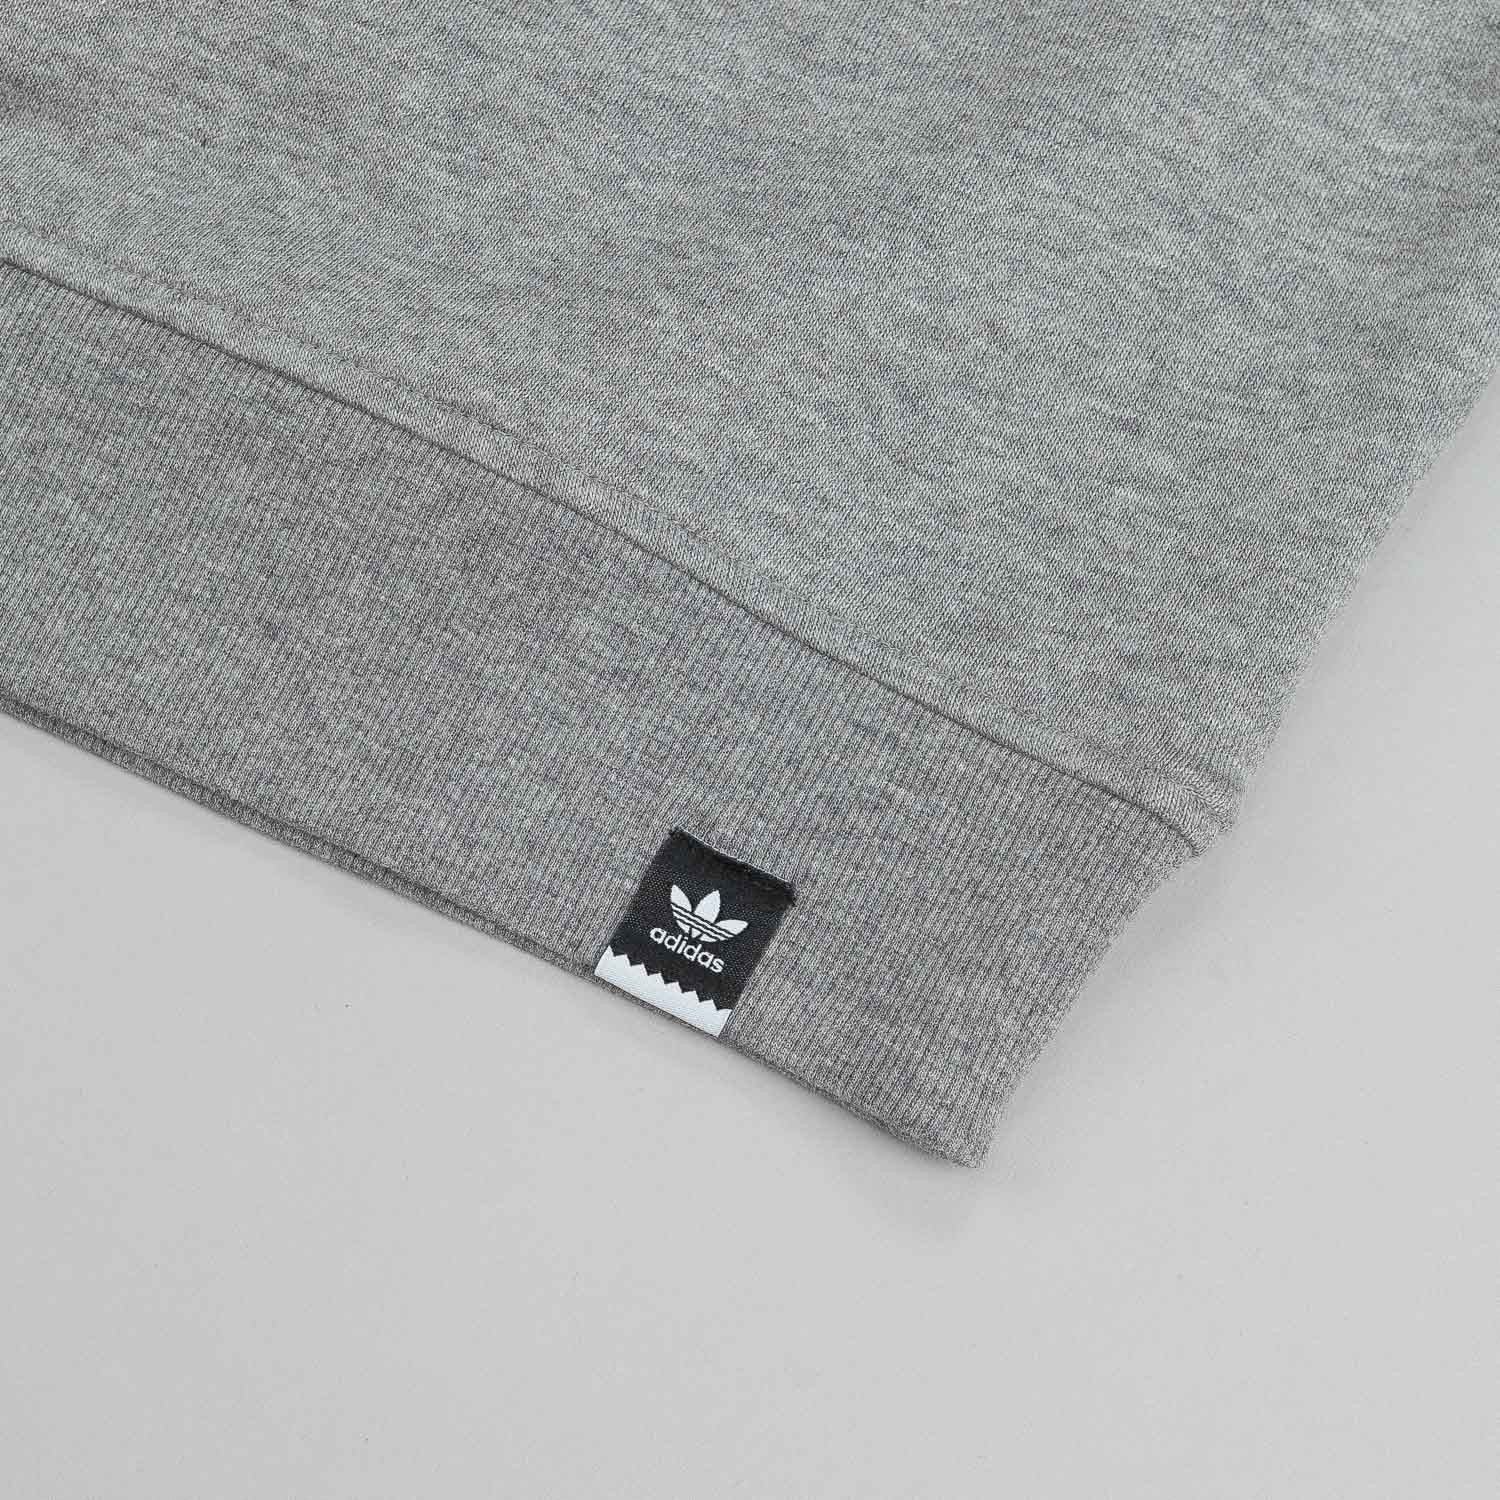 Adidas Adv 2.0 Logo Crew Neck Sweatshirt - Core Heather Grey